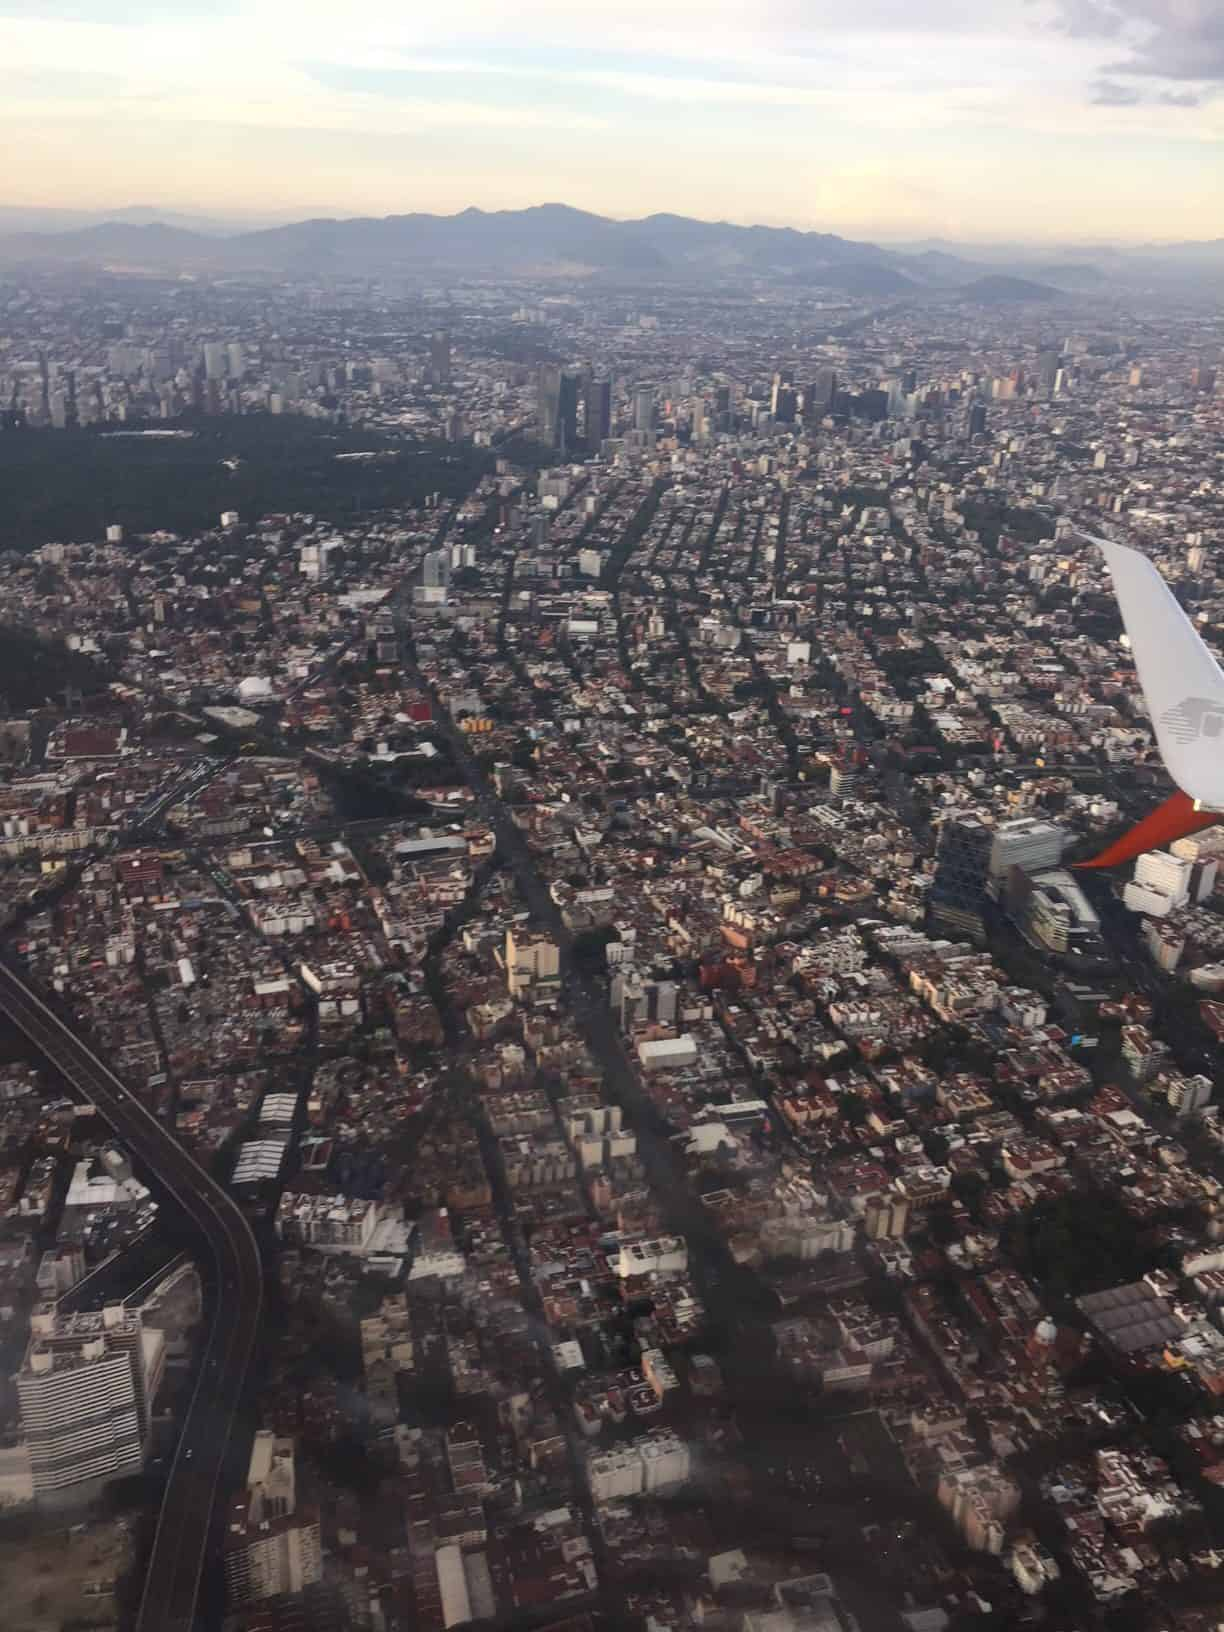 Seeing Mexico City from plane - Wonders of Oaxaca